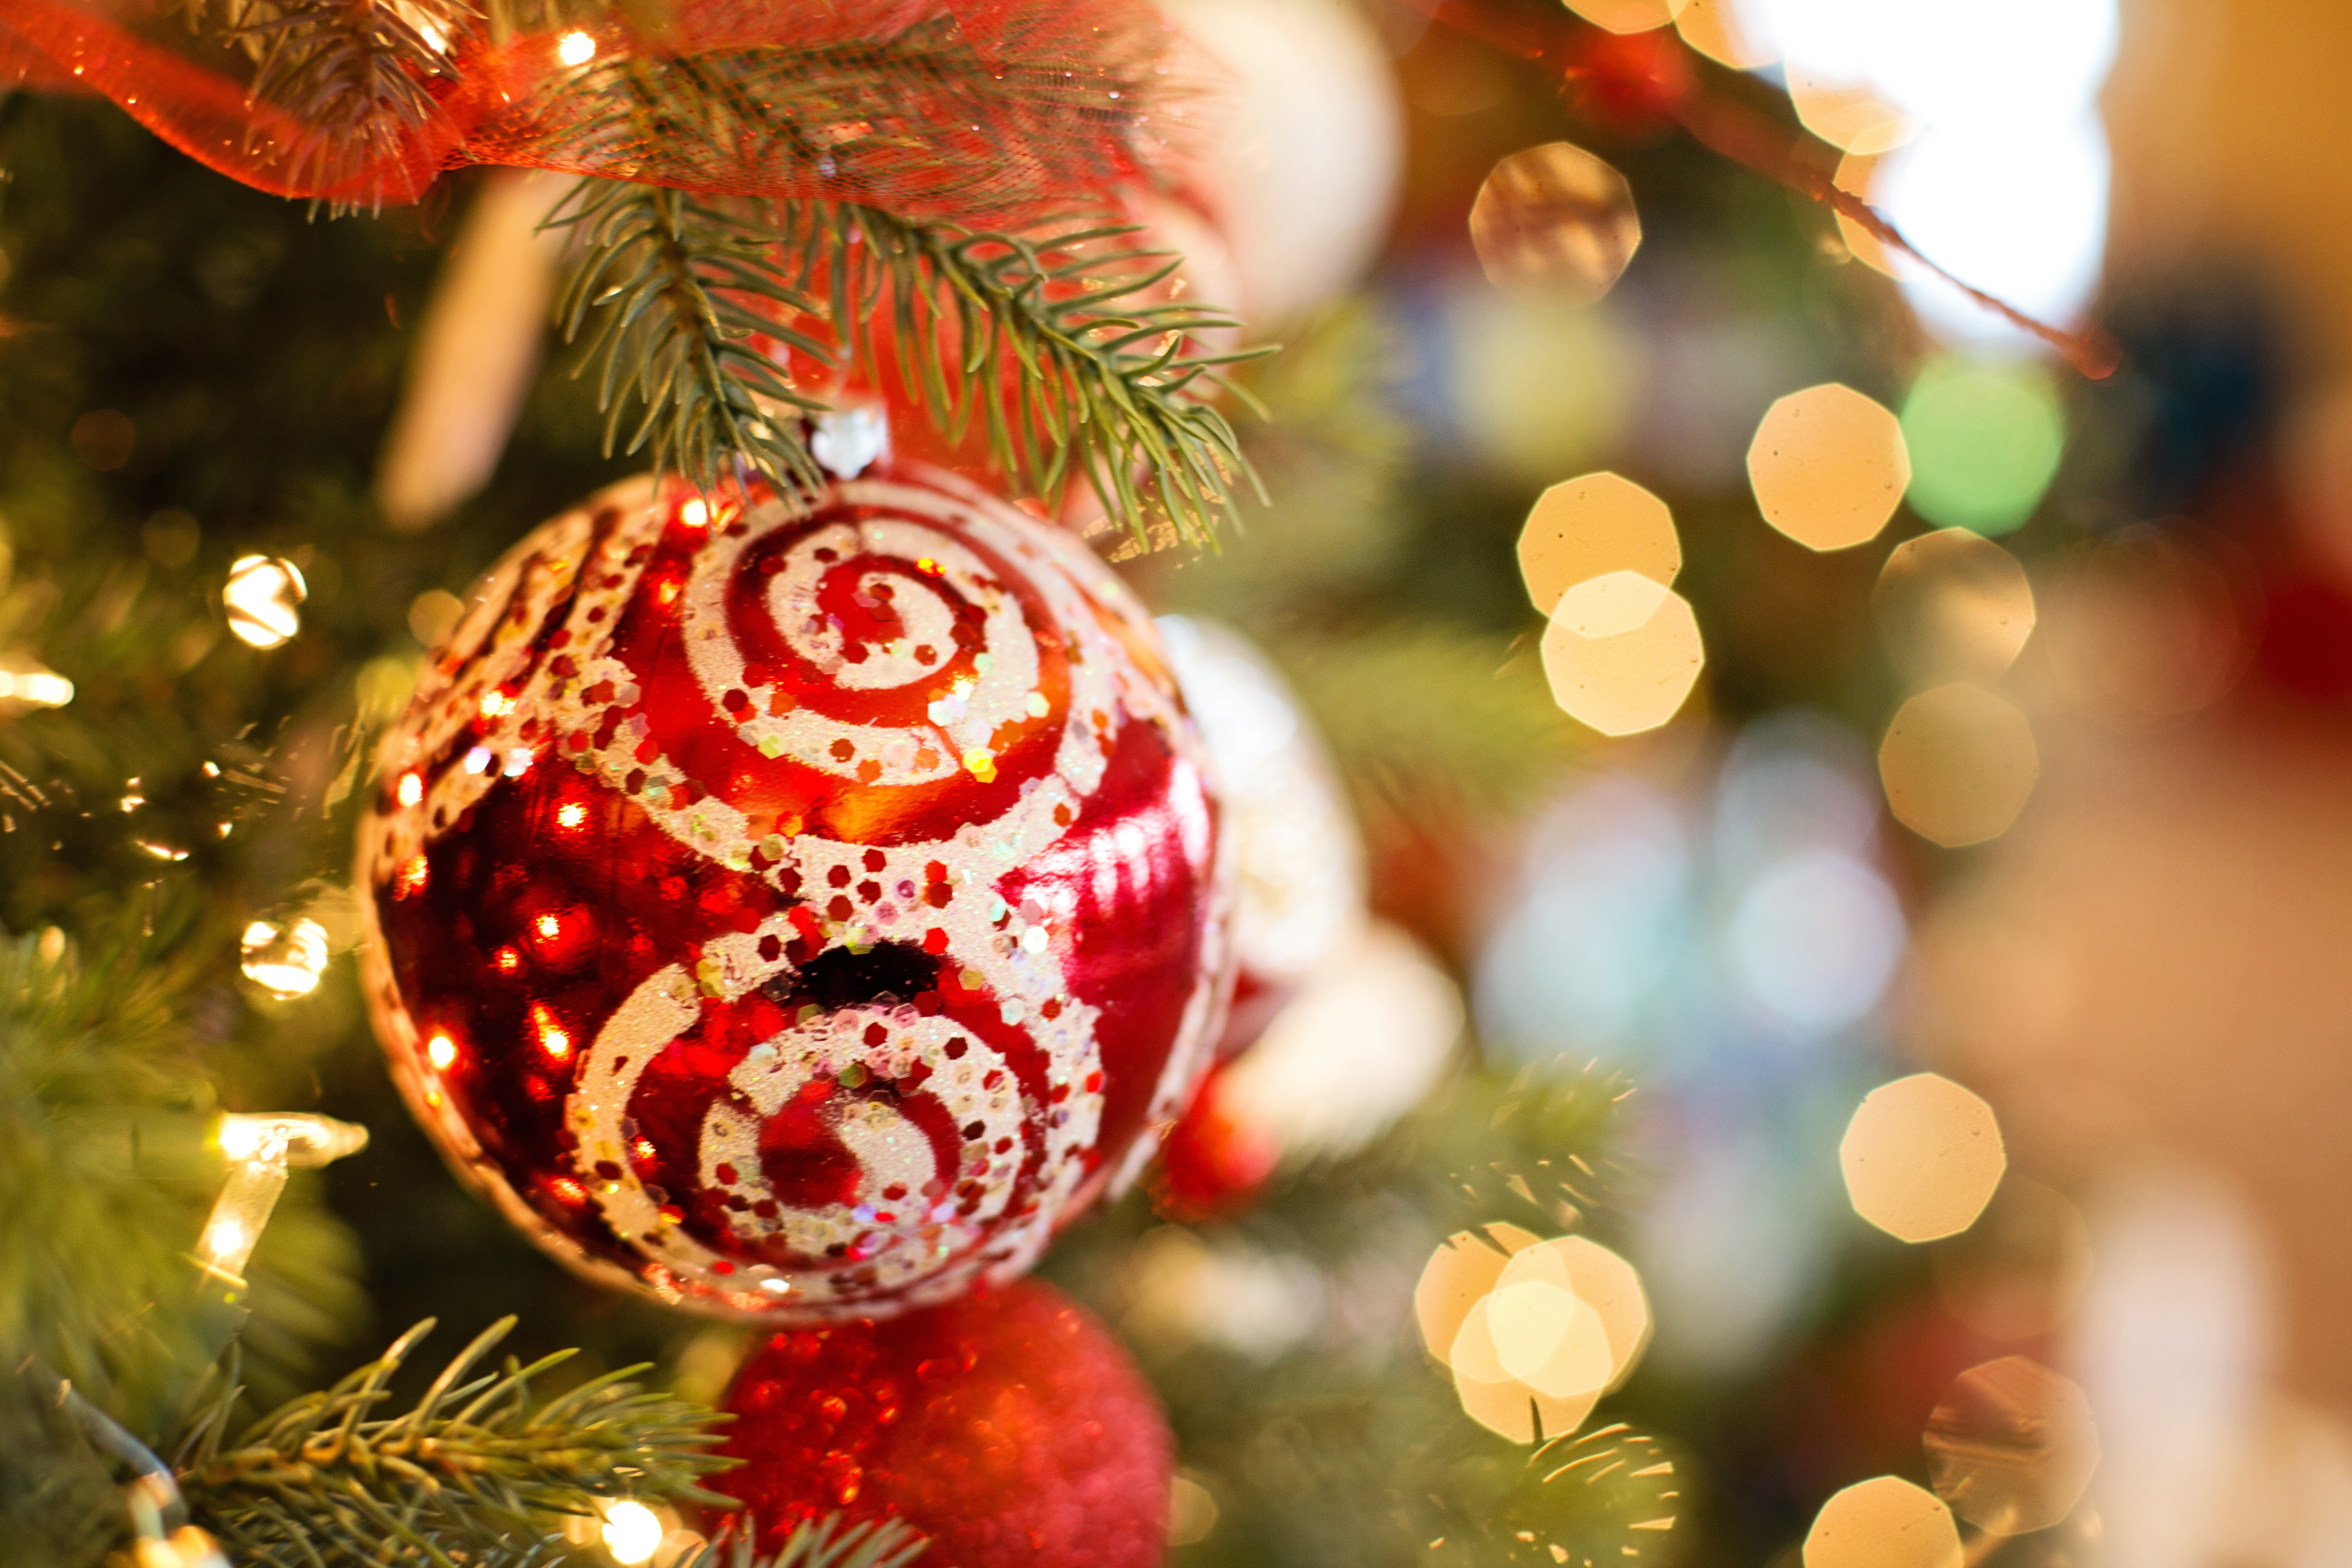 Christmas images pexels free stock photos for Christmas decoration items list